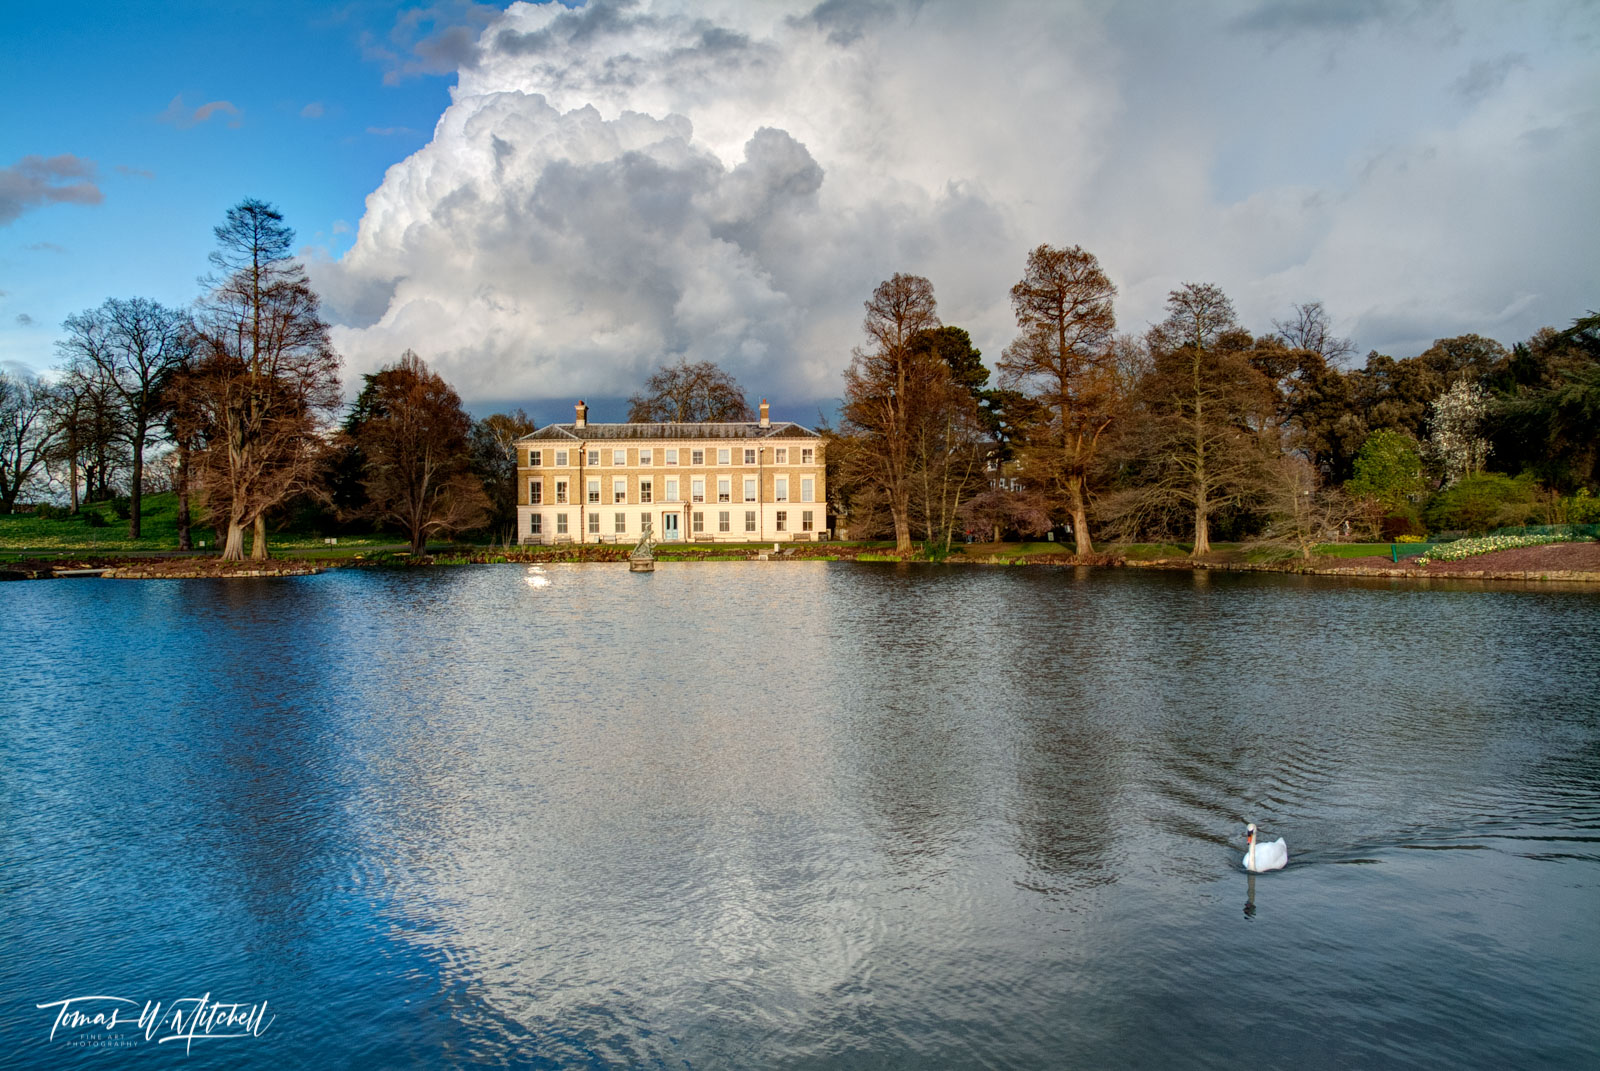 limited edition, museum grade, fine art, prints, kew gardens, swan, lake, london, england, botanic garden, exotic, middlesex, kew, explore, photographs, billowing clouds, museum, reflection, photo